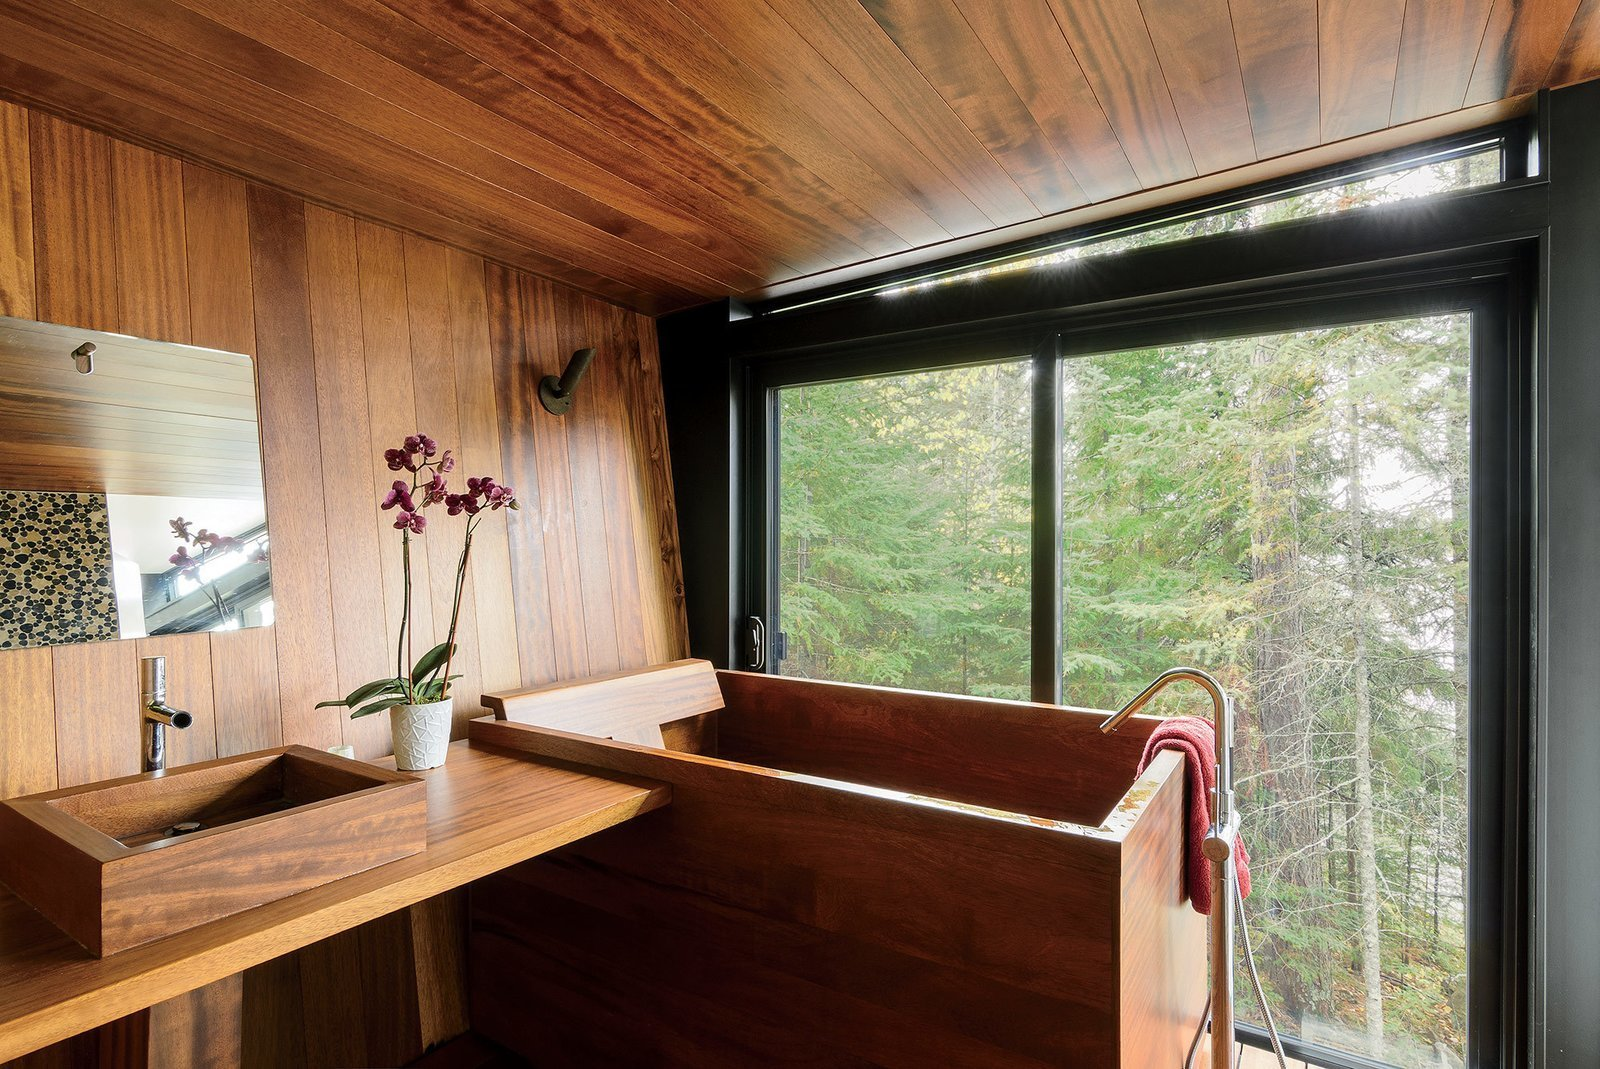 Photo 18 of 21 in 10 Zen Homes That Champion Japanese Design - Dwell